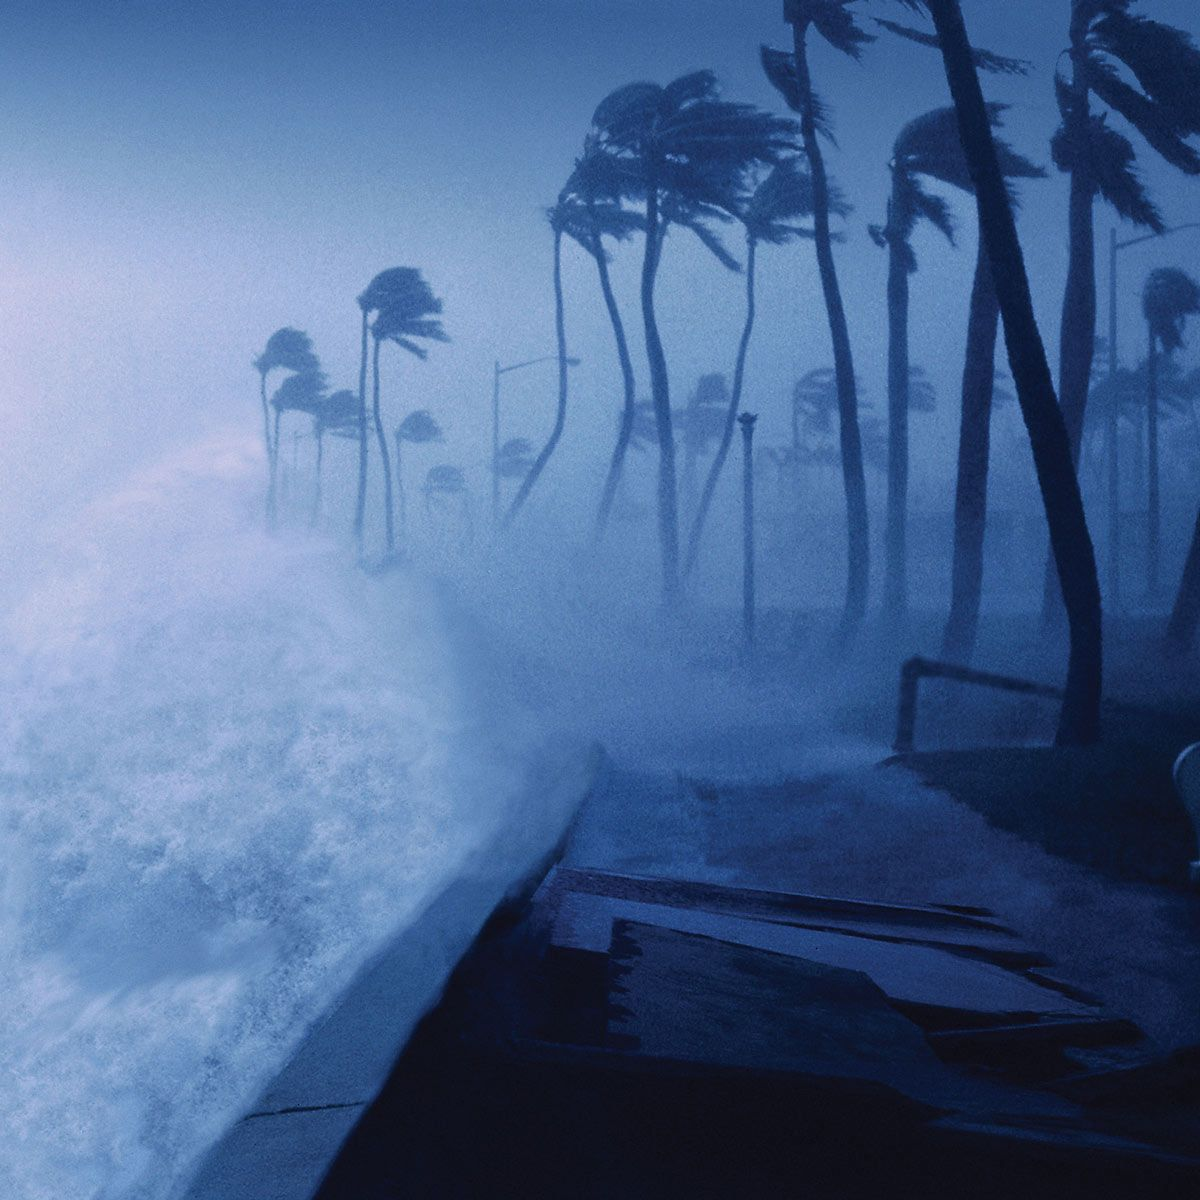 Severe Weather What To Do For A Hurricane Severe Weather Home Protection Home Safety